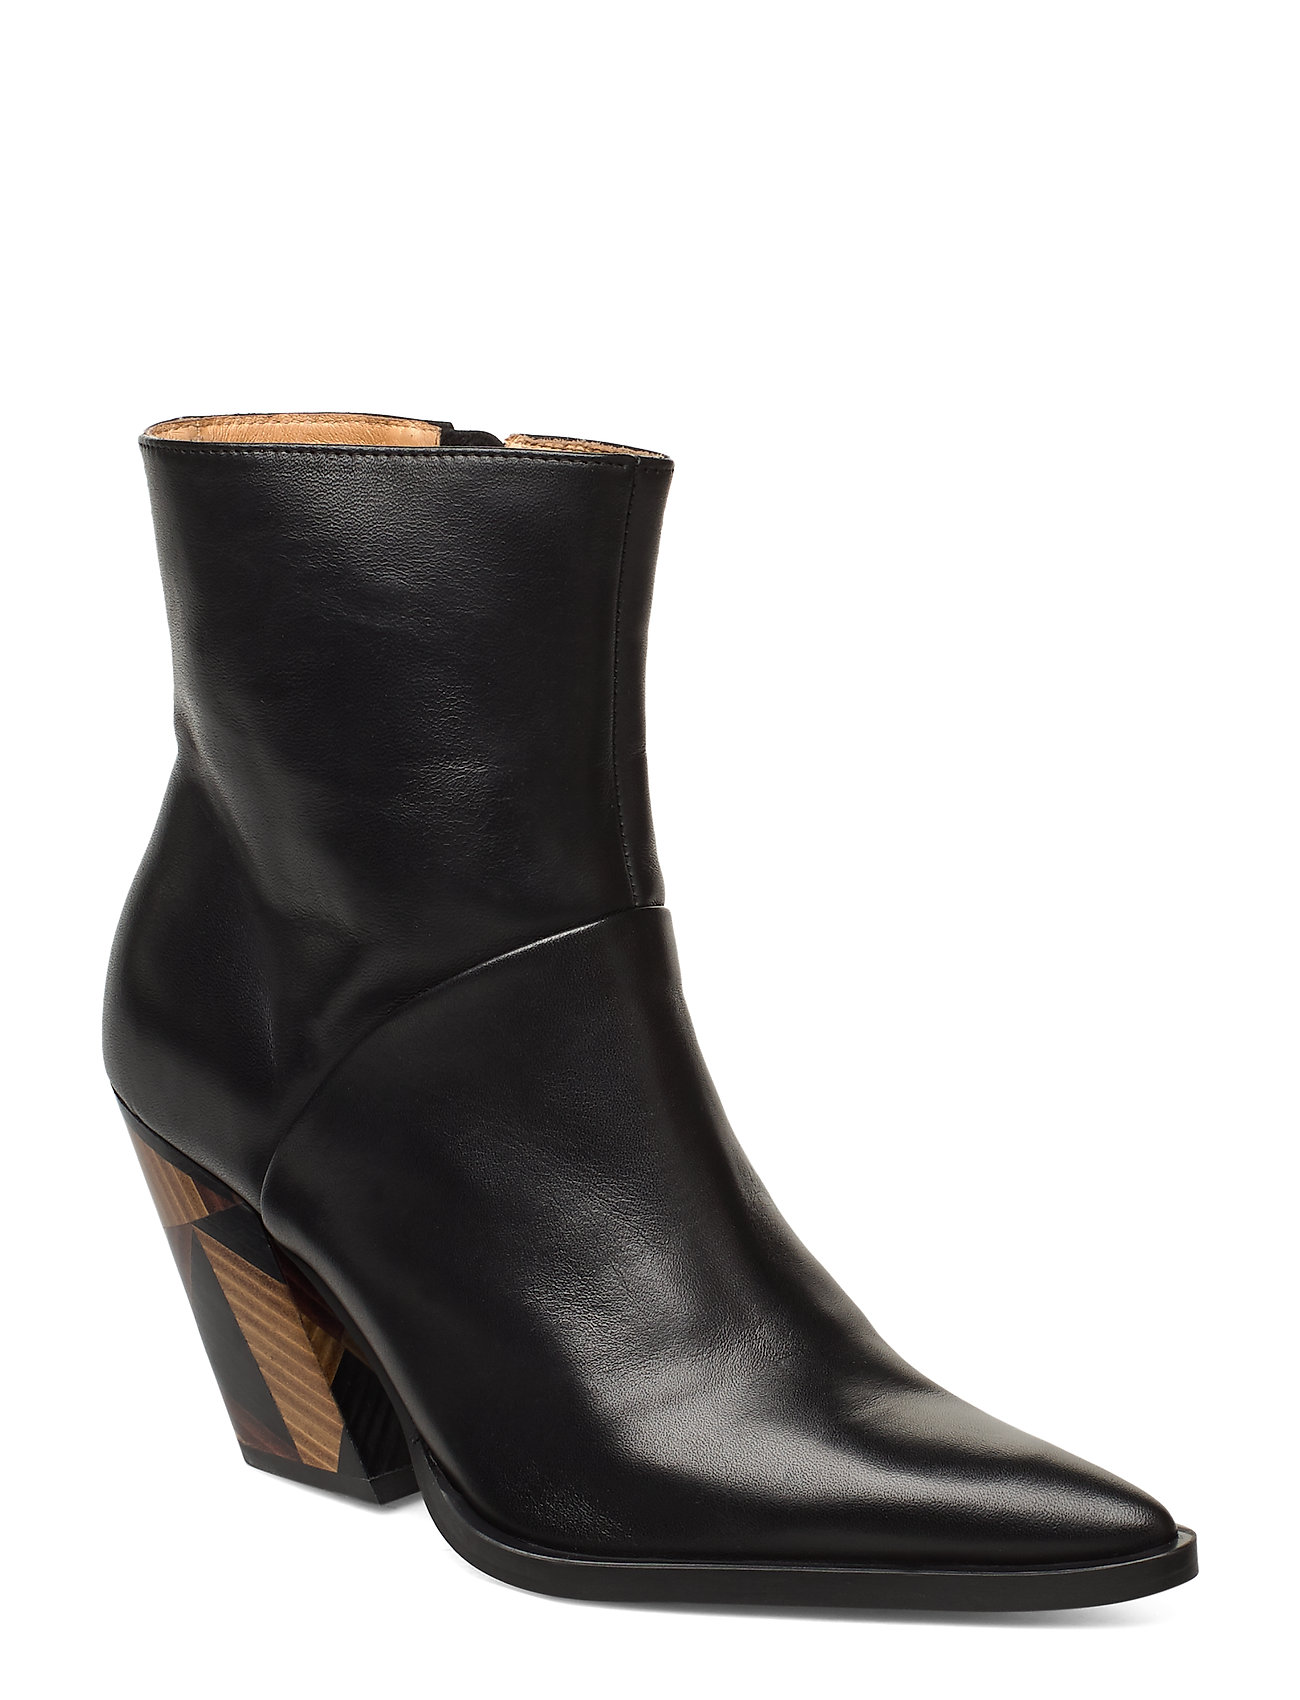 Image of Escape From Reality Shoes Boots Ankle Boots Ankle Boot - Heel Sort ANNY NORD (3463780471)